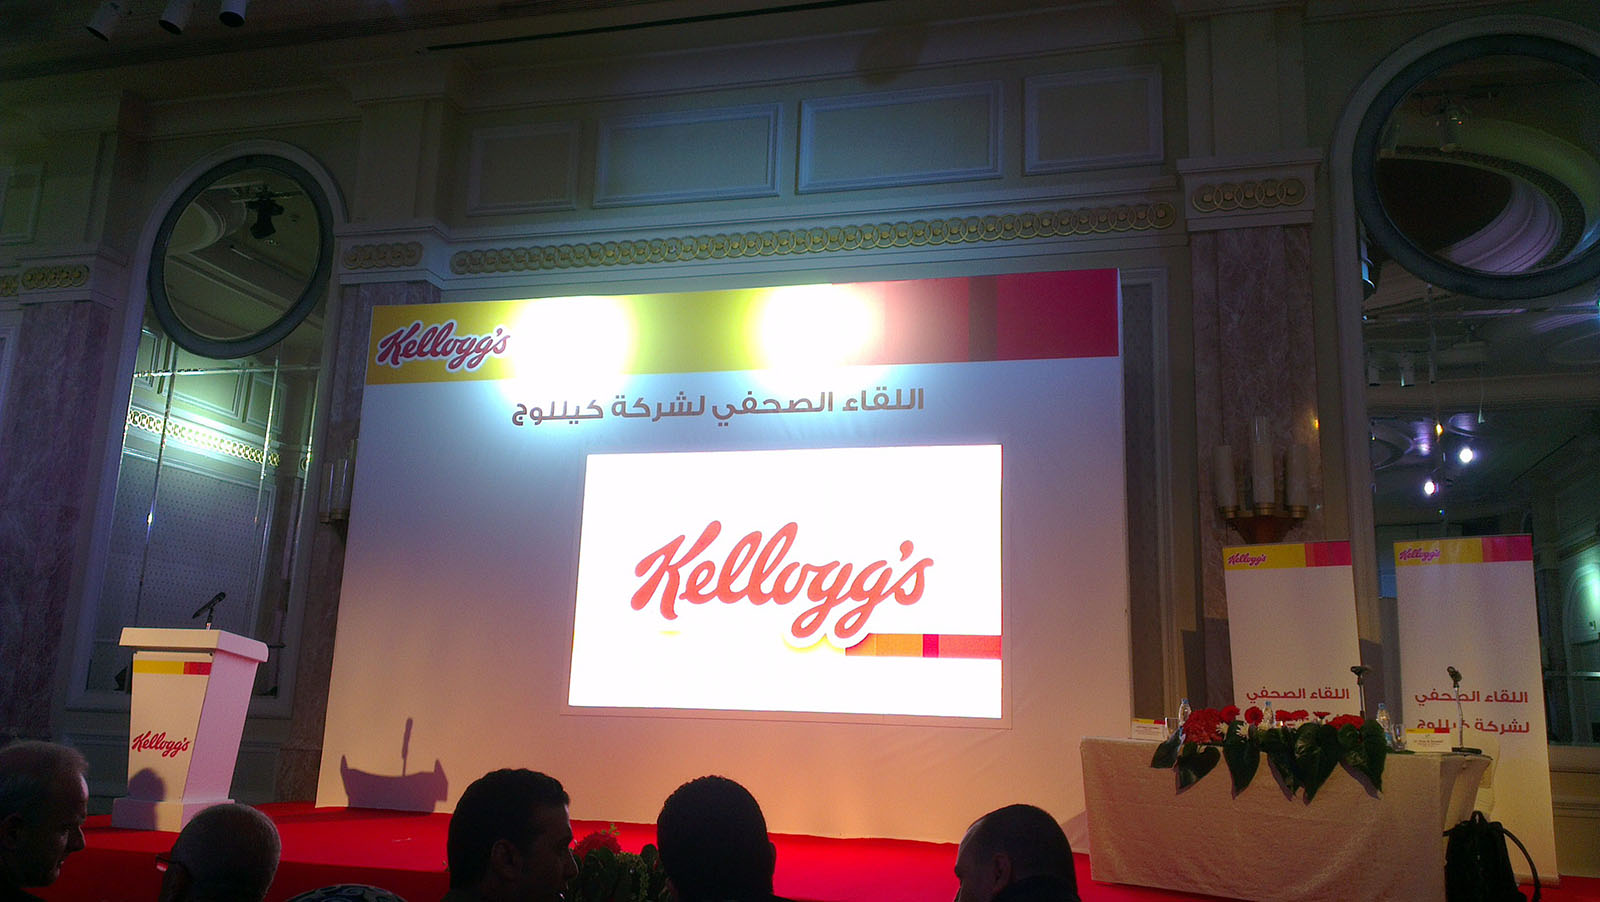 The Truth behind Kellogg Buying Bisco Misr Shares